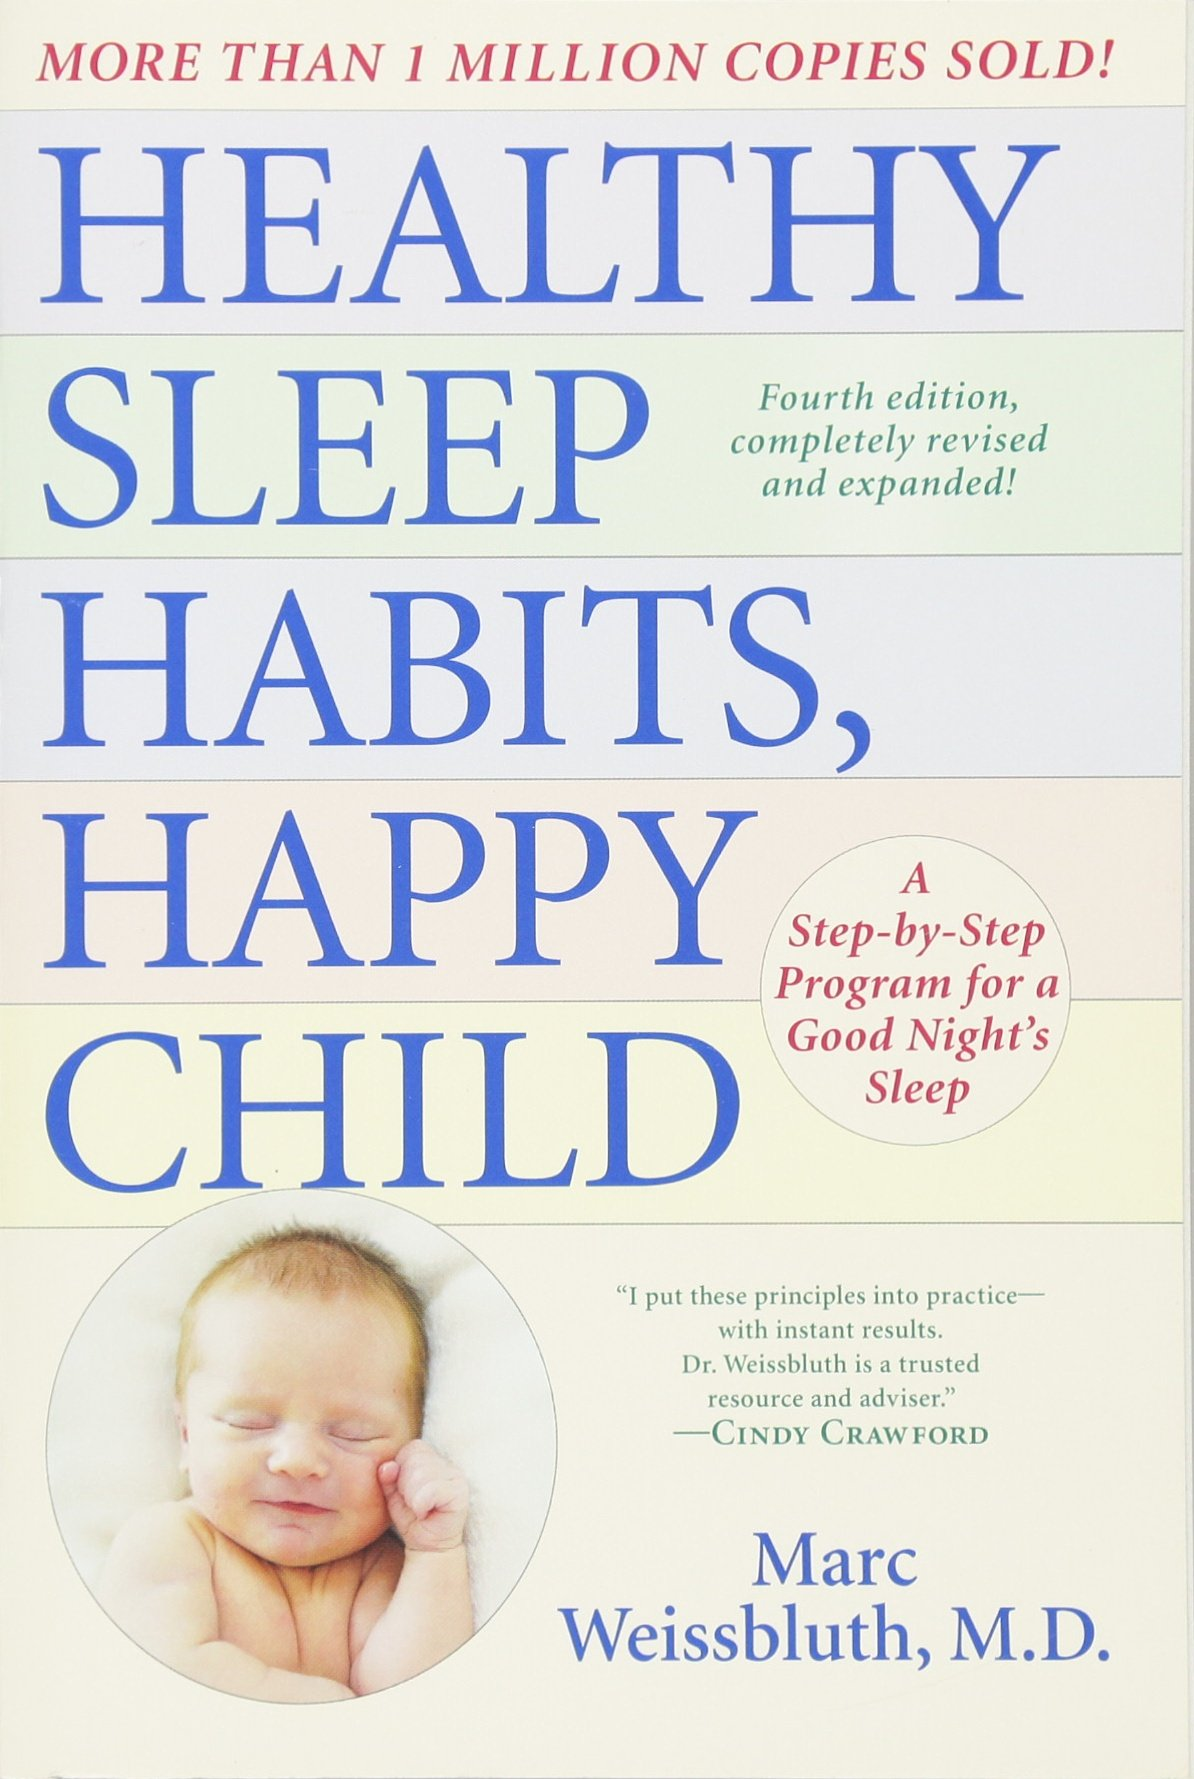 Healthy Sleep Habits, Happy Child, 4th Edition: A Stepbystep Program For  A Good Night's Sleep: Marc Weissbluth Md: 9780553394801: Amazon: Books